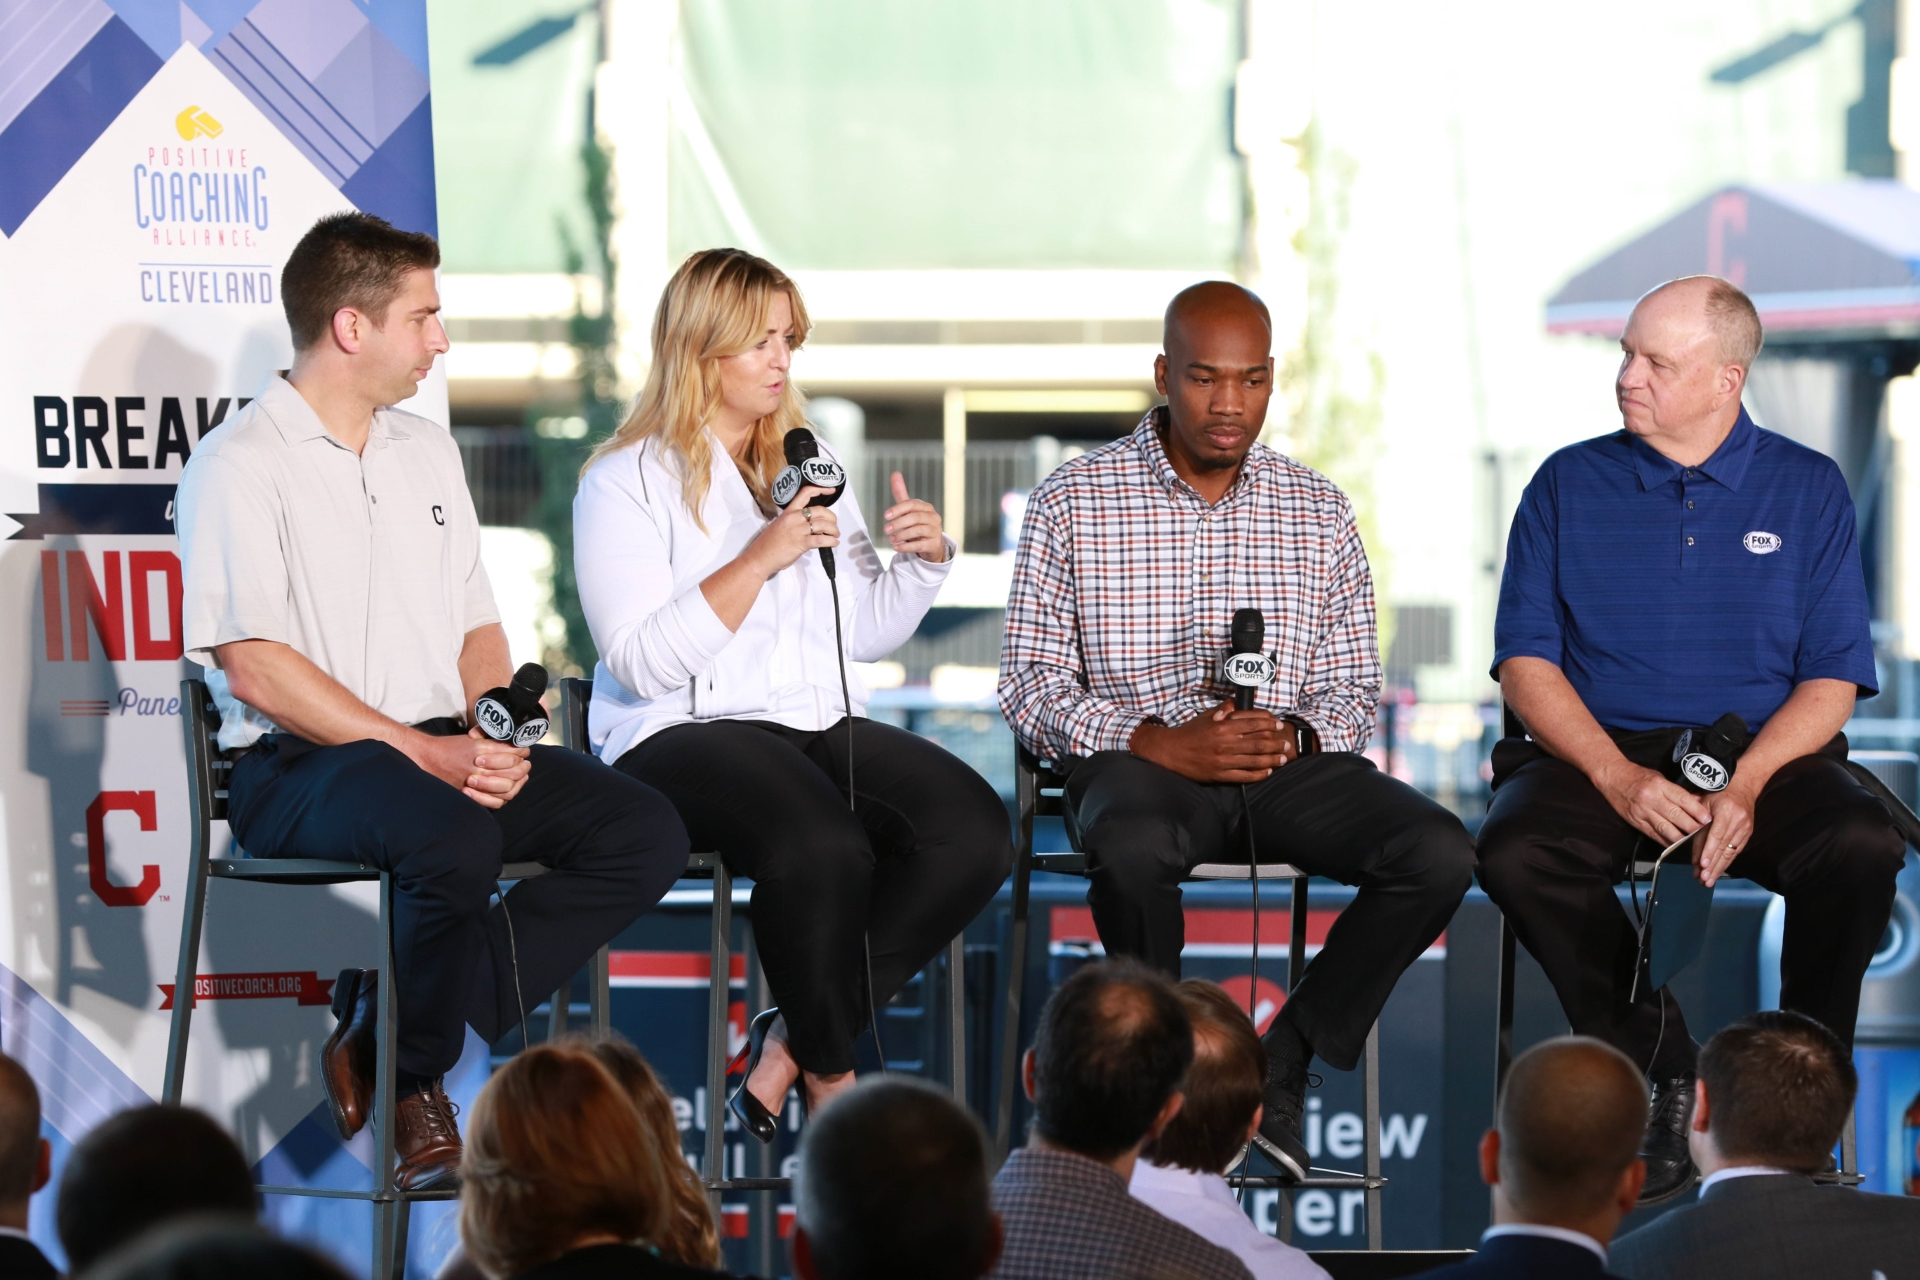 Mike Chernoff, Ceci Clark, James Harris, and FOX Sports Ohio Moderator, Jeff Phelps